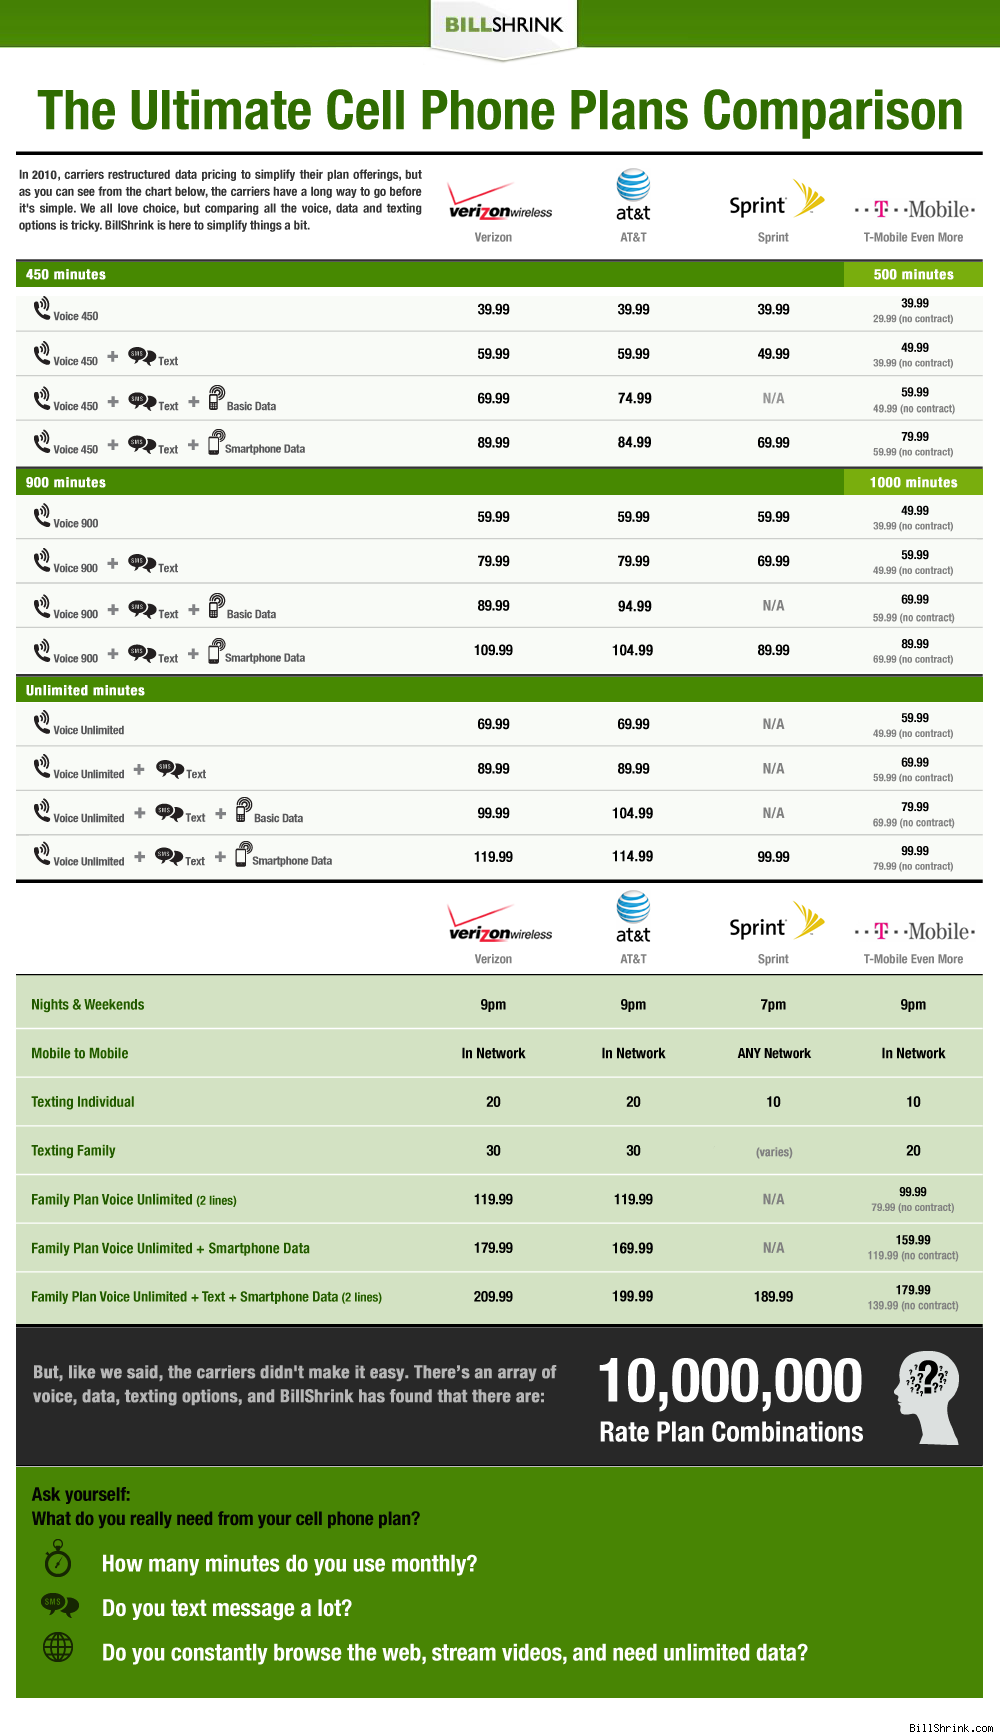 Ultimate cell phone plan comparison from billshrink infographic